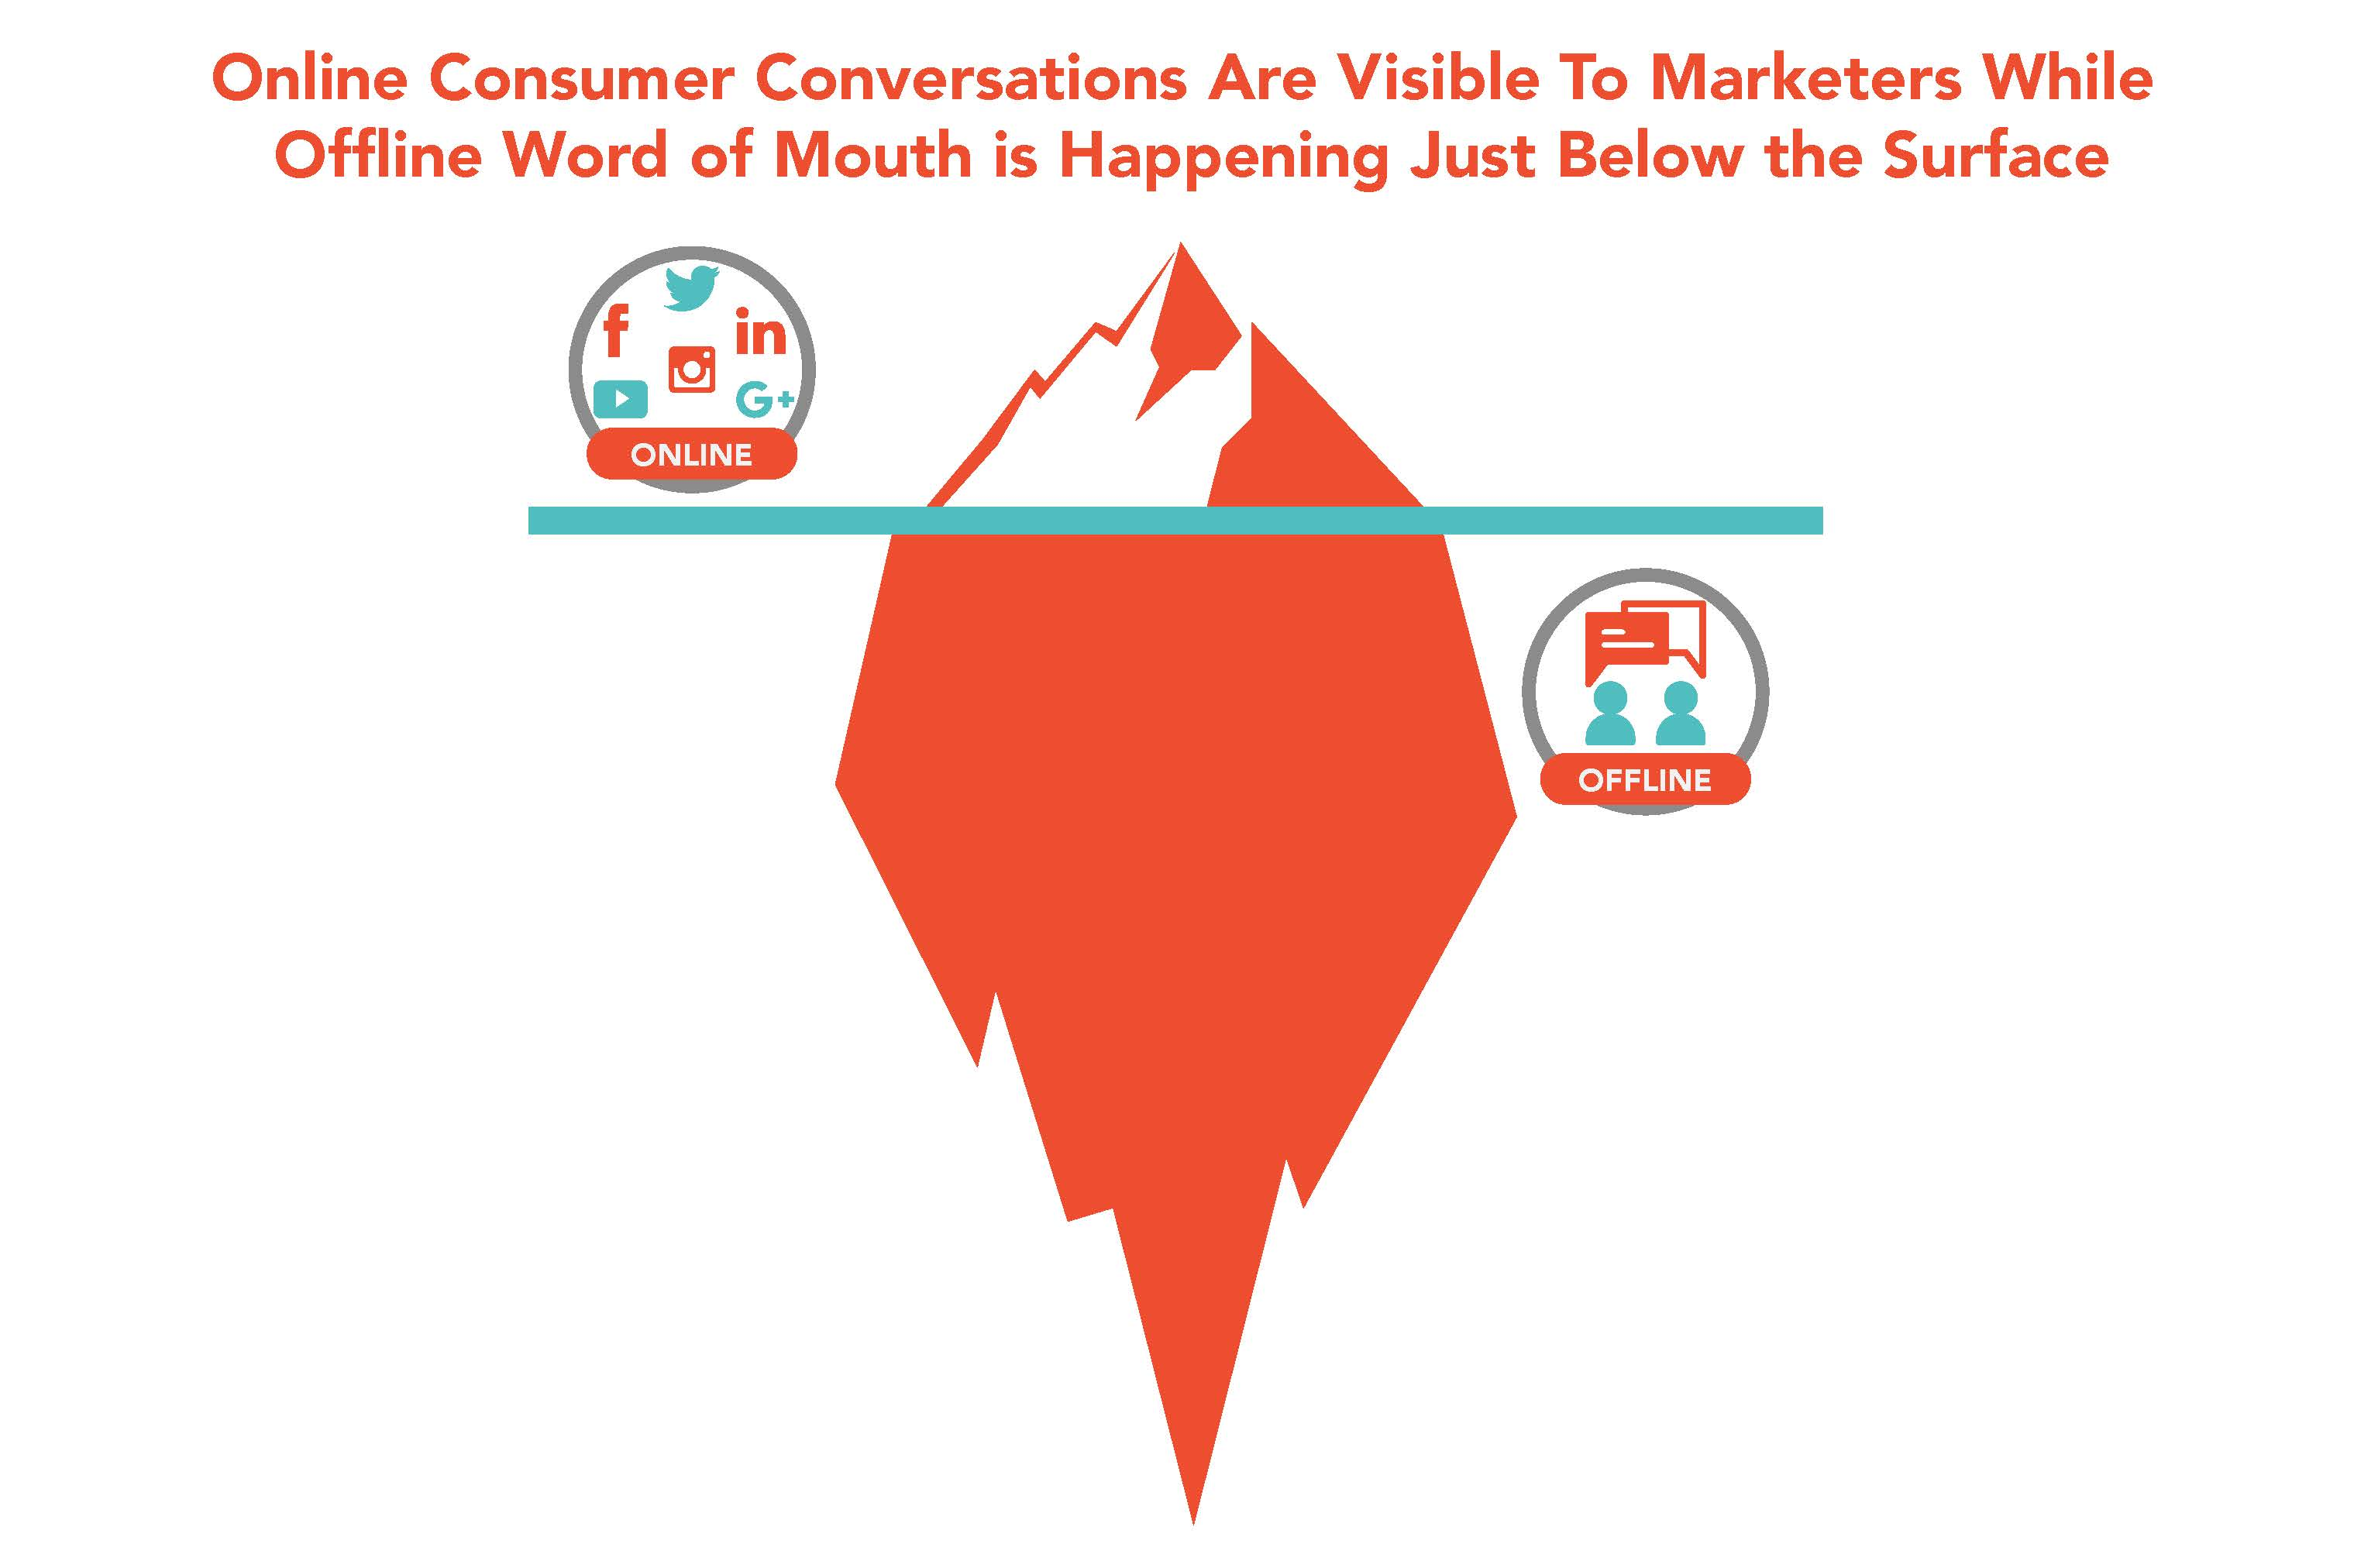 Online Consumer Conversations Are Visible to Marketers While Offline Word of Mouth is Happening Just Below the Surface